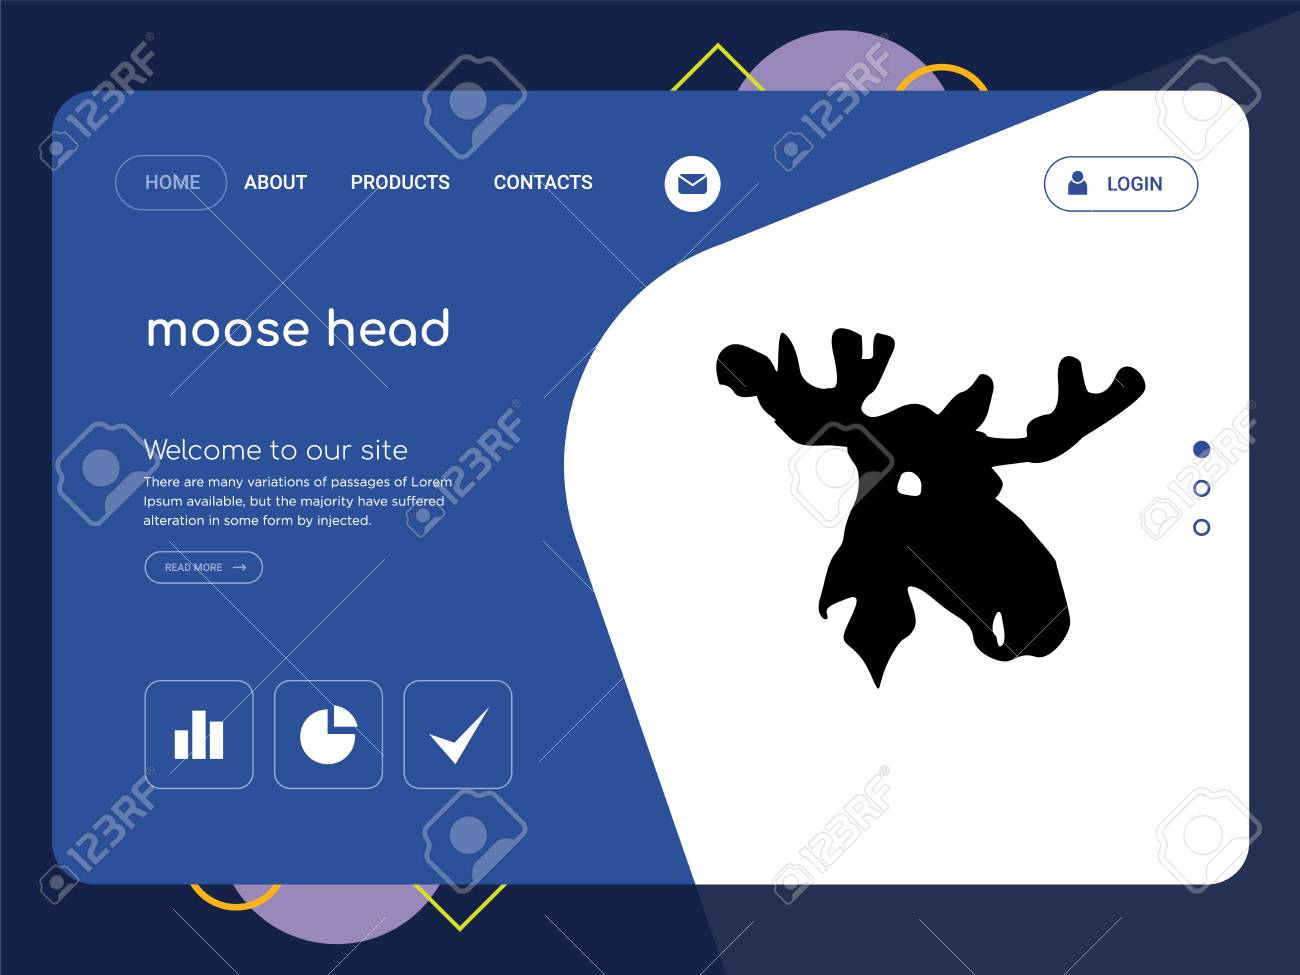 quality one page moose head website template vector eps modern